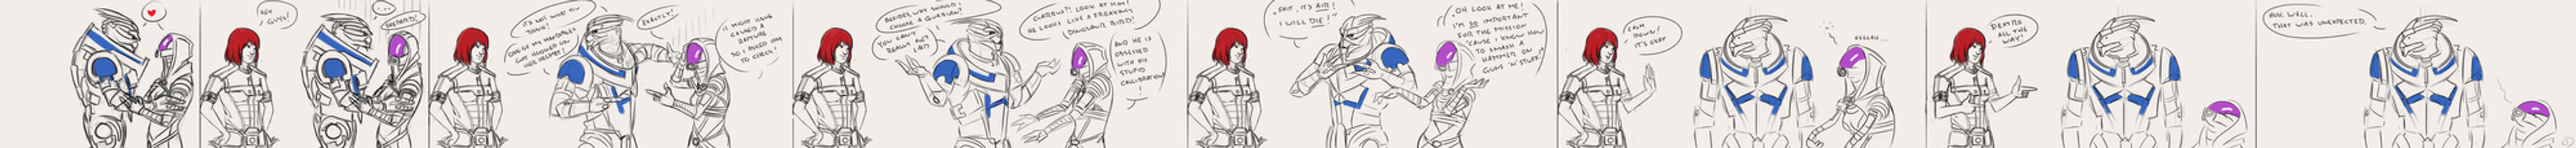 It's not what you think, Shepard! by Ma-rin